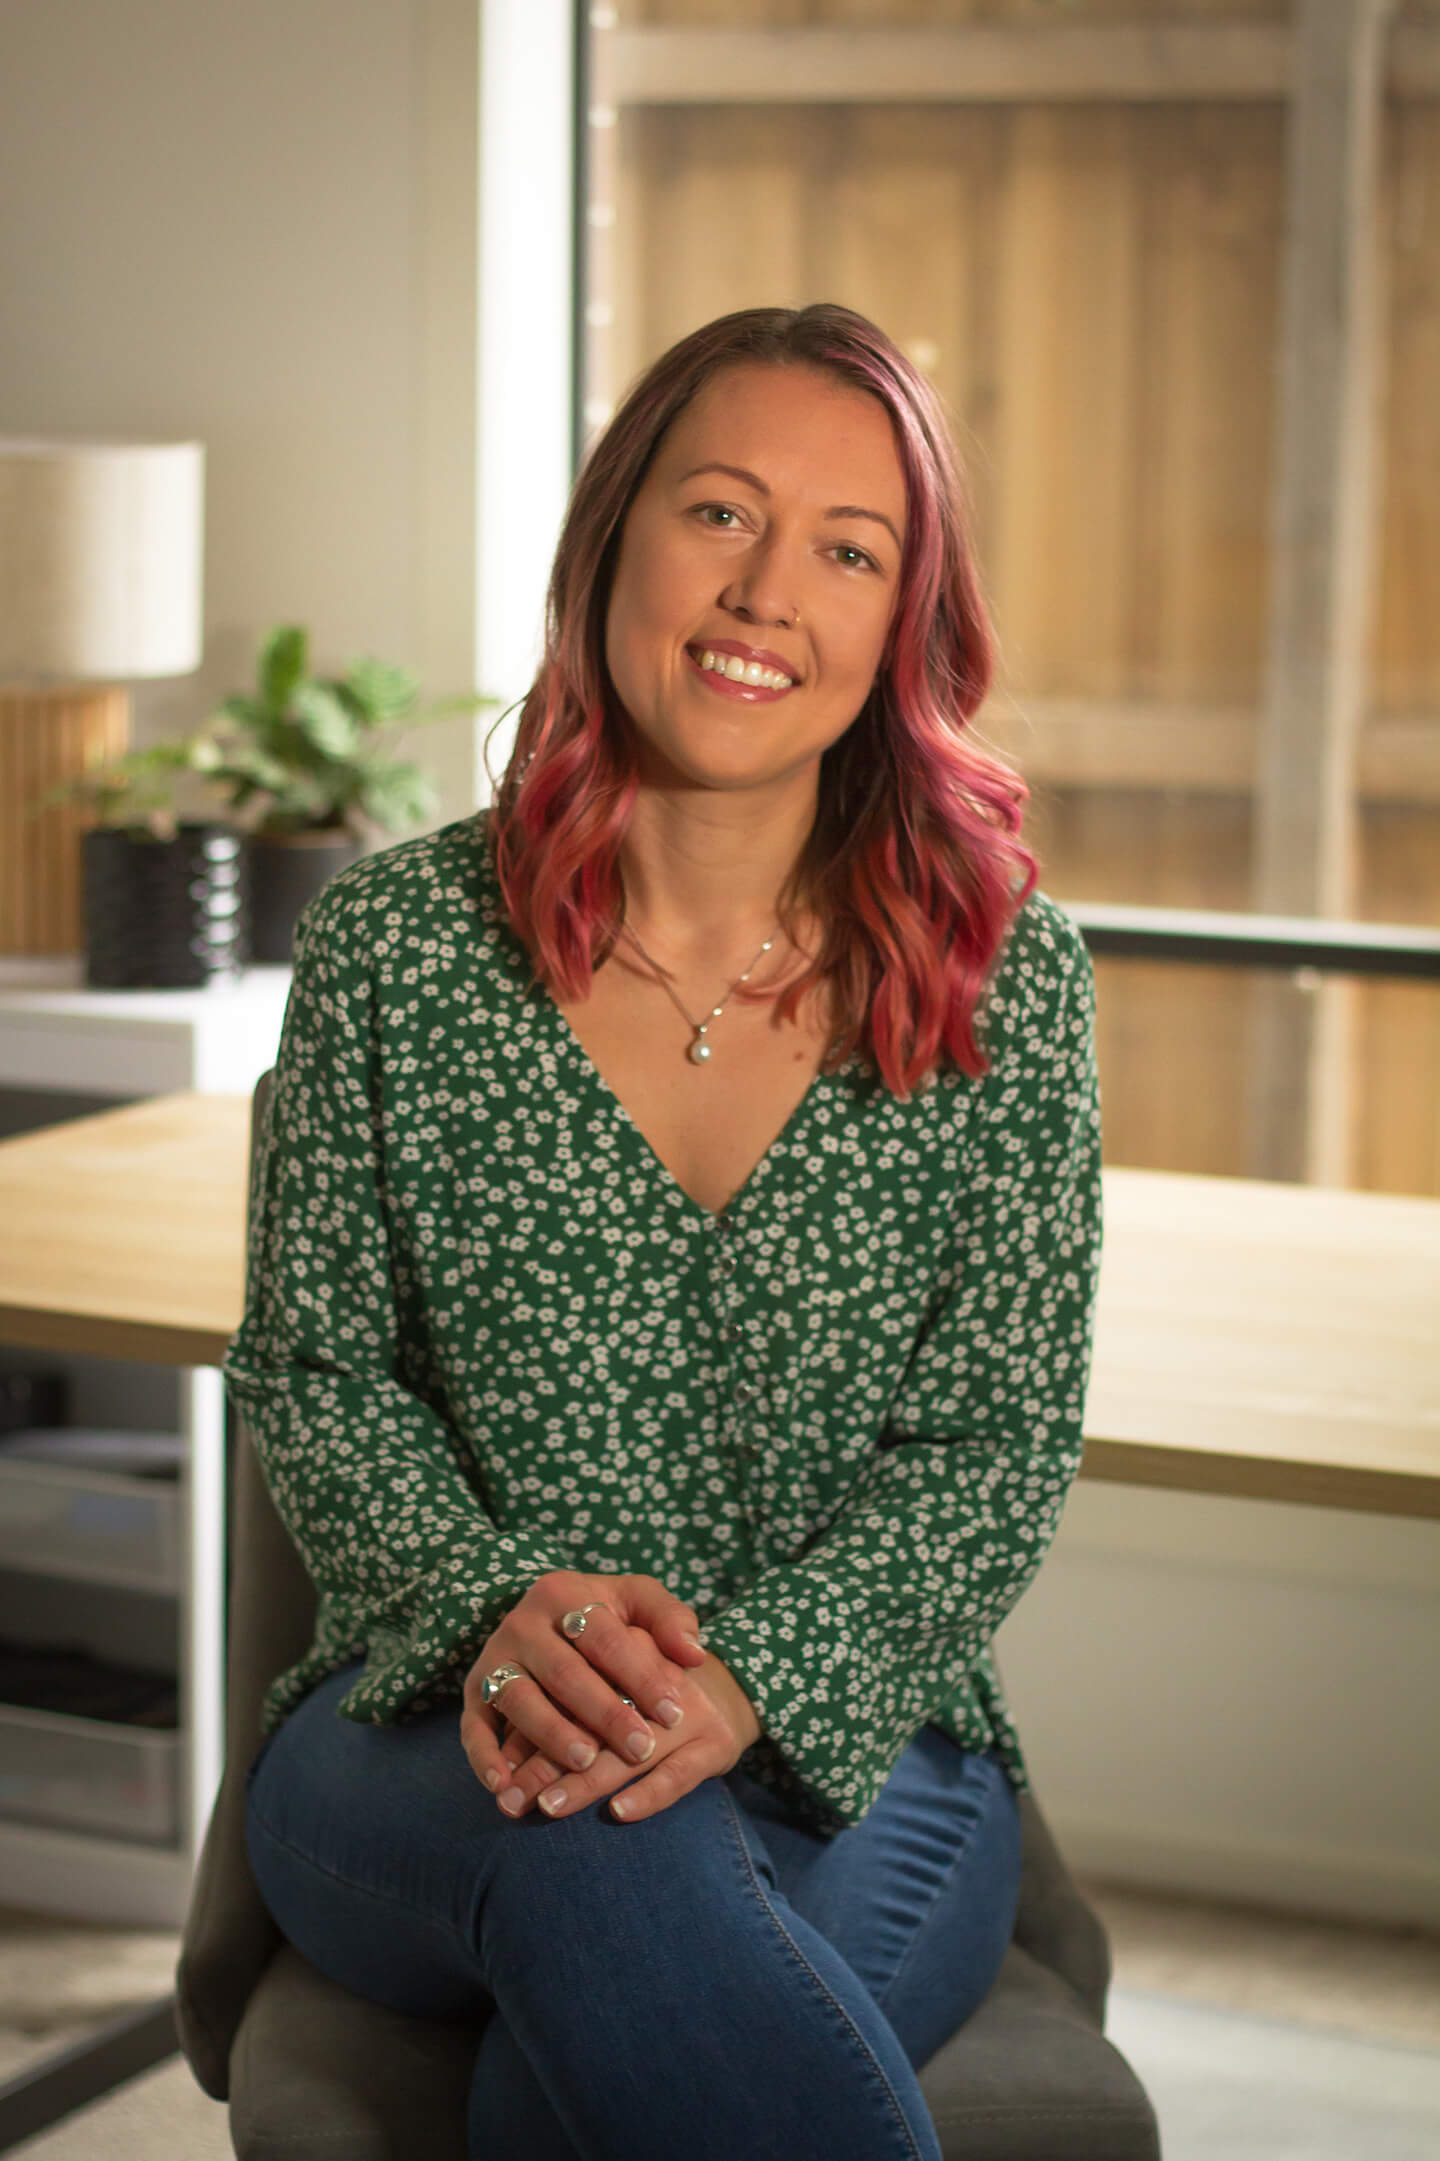 Ashley Rose, Creative Director, at the Laluca Creative office